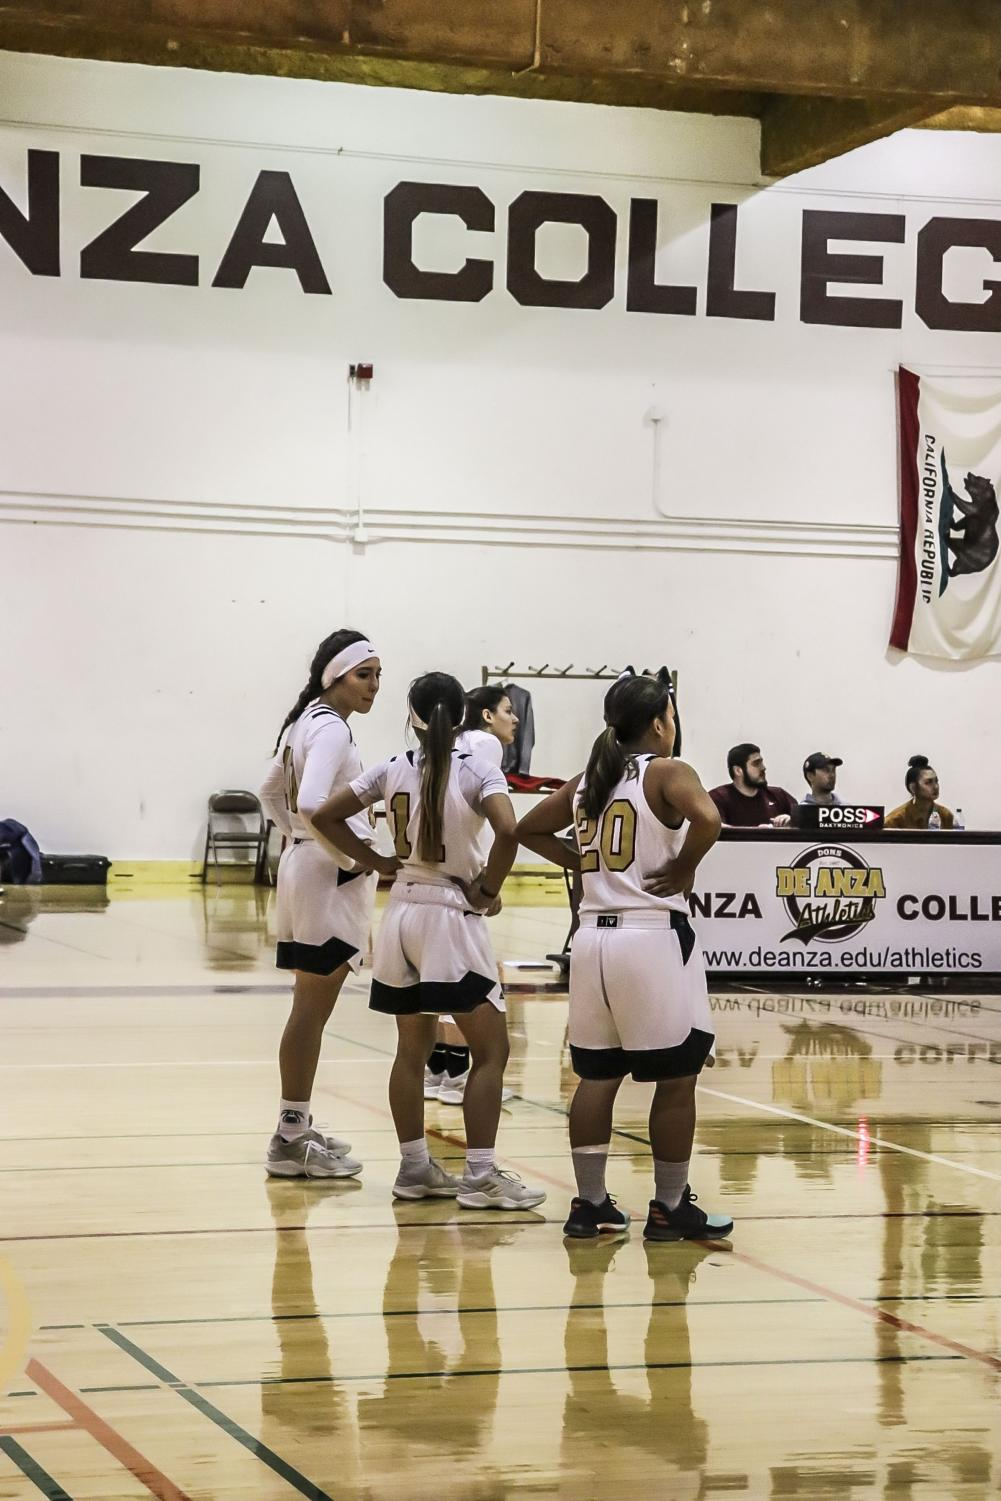 The+De+Anza+College+women%27s+basketball+team+lost+29-106+despite+showing+strong+spirit+at+the+Jan.+11+home+game.